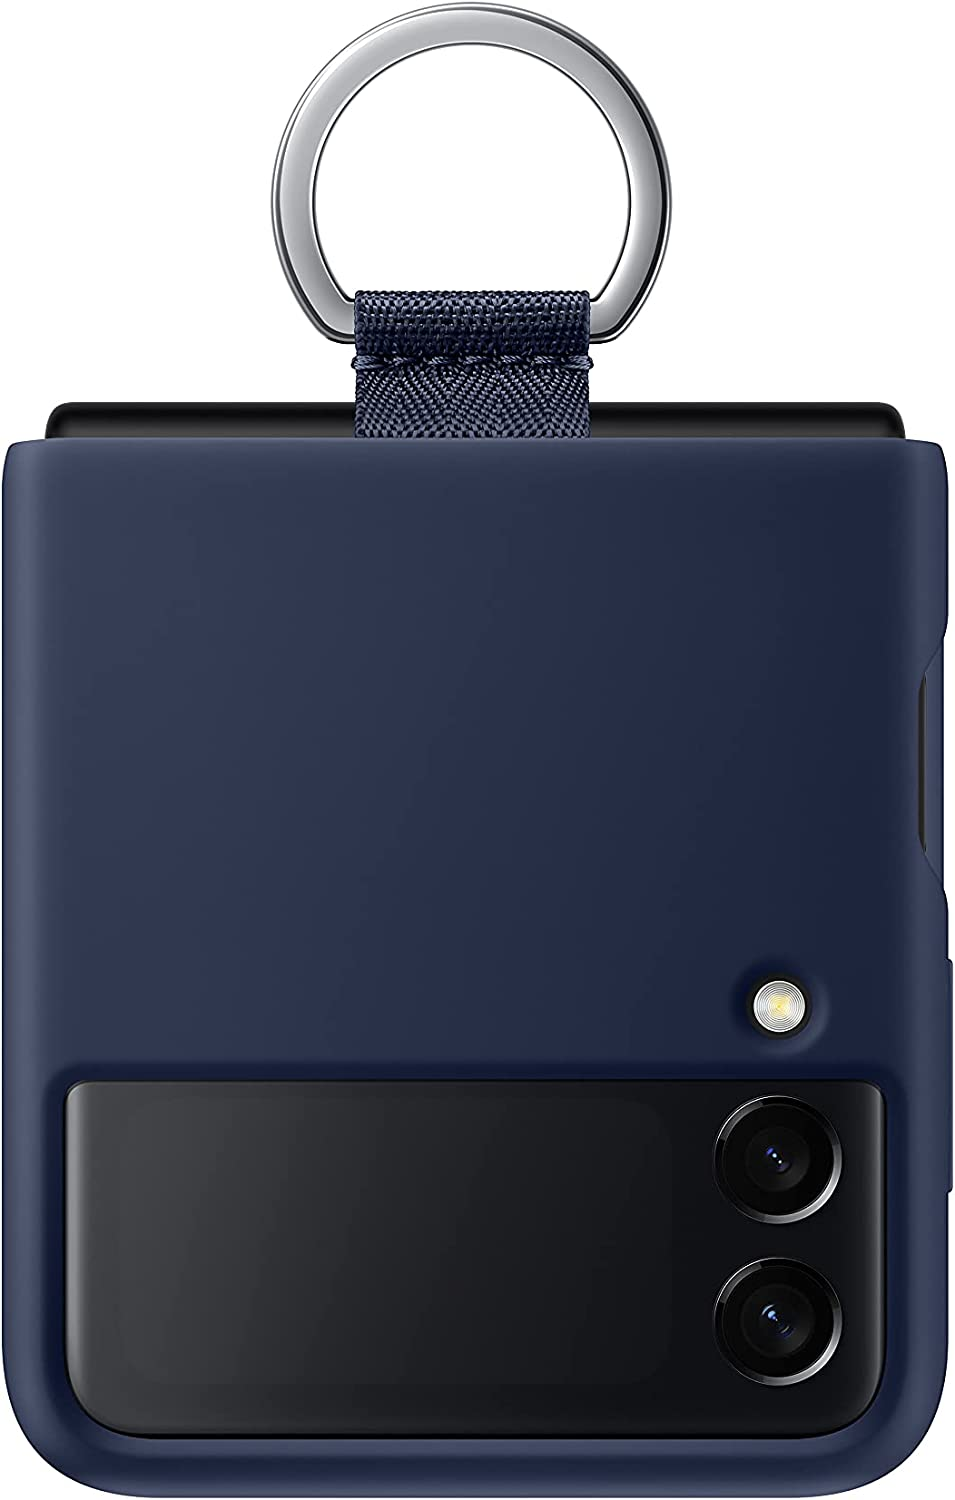 Samsung Galaxy Z Flip 3 Phone Case, Silicone Protective Cover with Ring, Heavy Duty, Shockproof Smartphone Protector, US Version, Navy